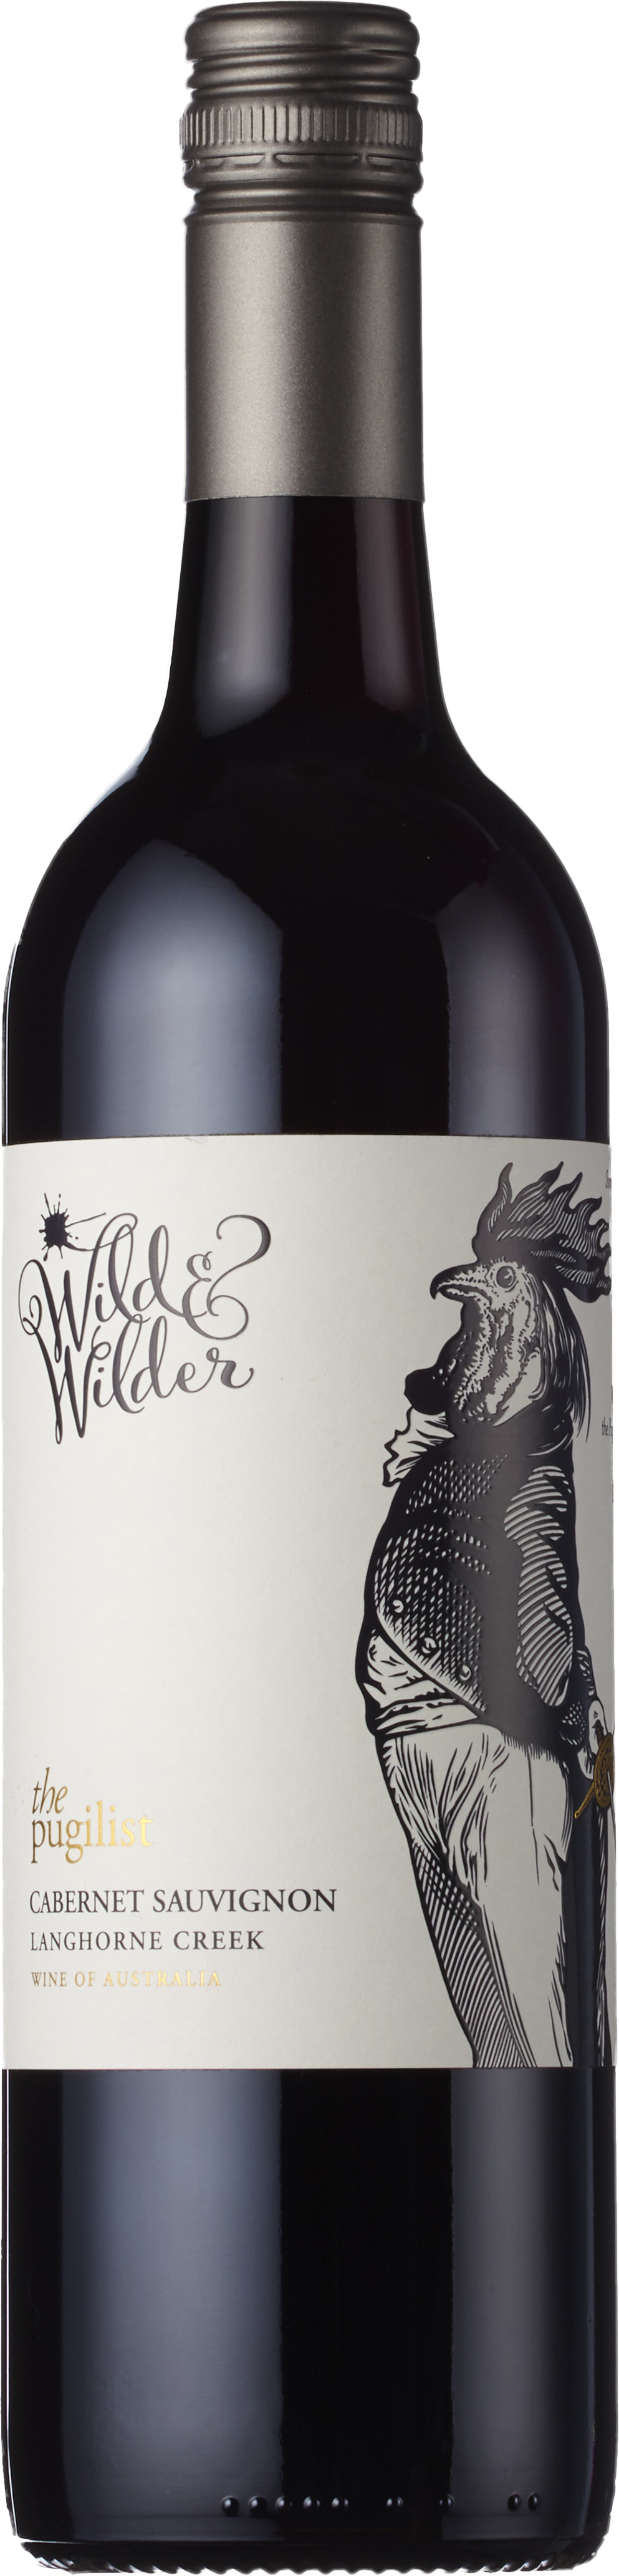 Wild & Wilder - The Pugilist Cabernet Sauvignon Langhorne Creek South Australia 2018 12x 75cl Bottles